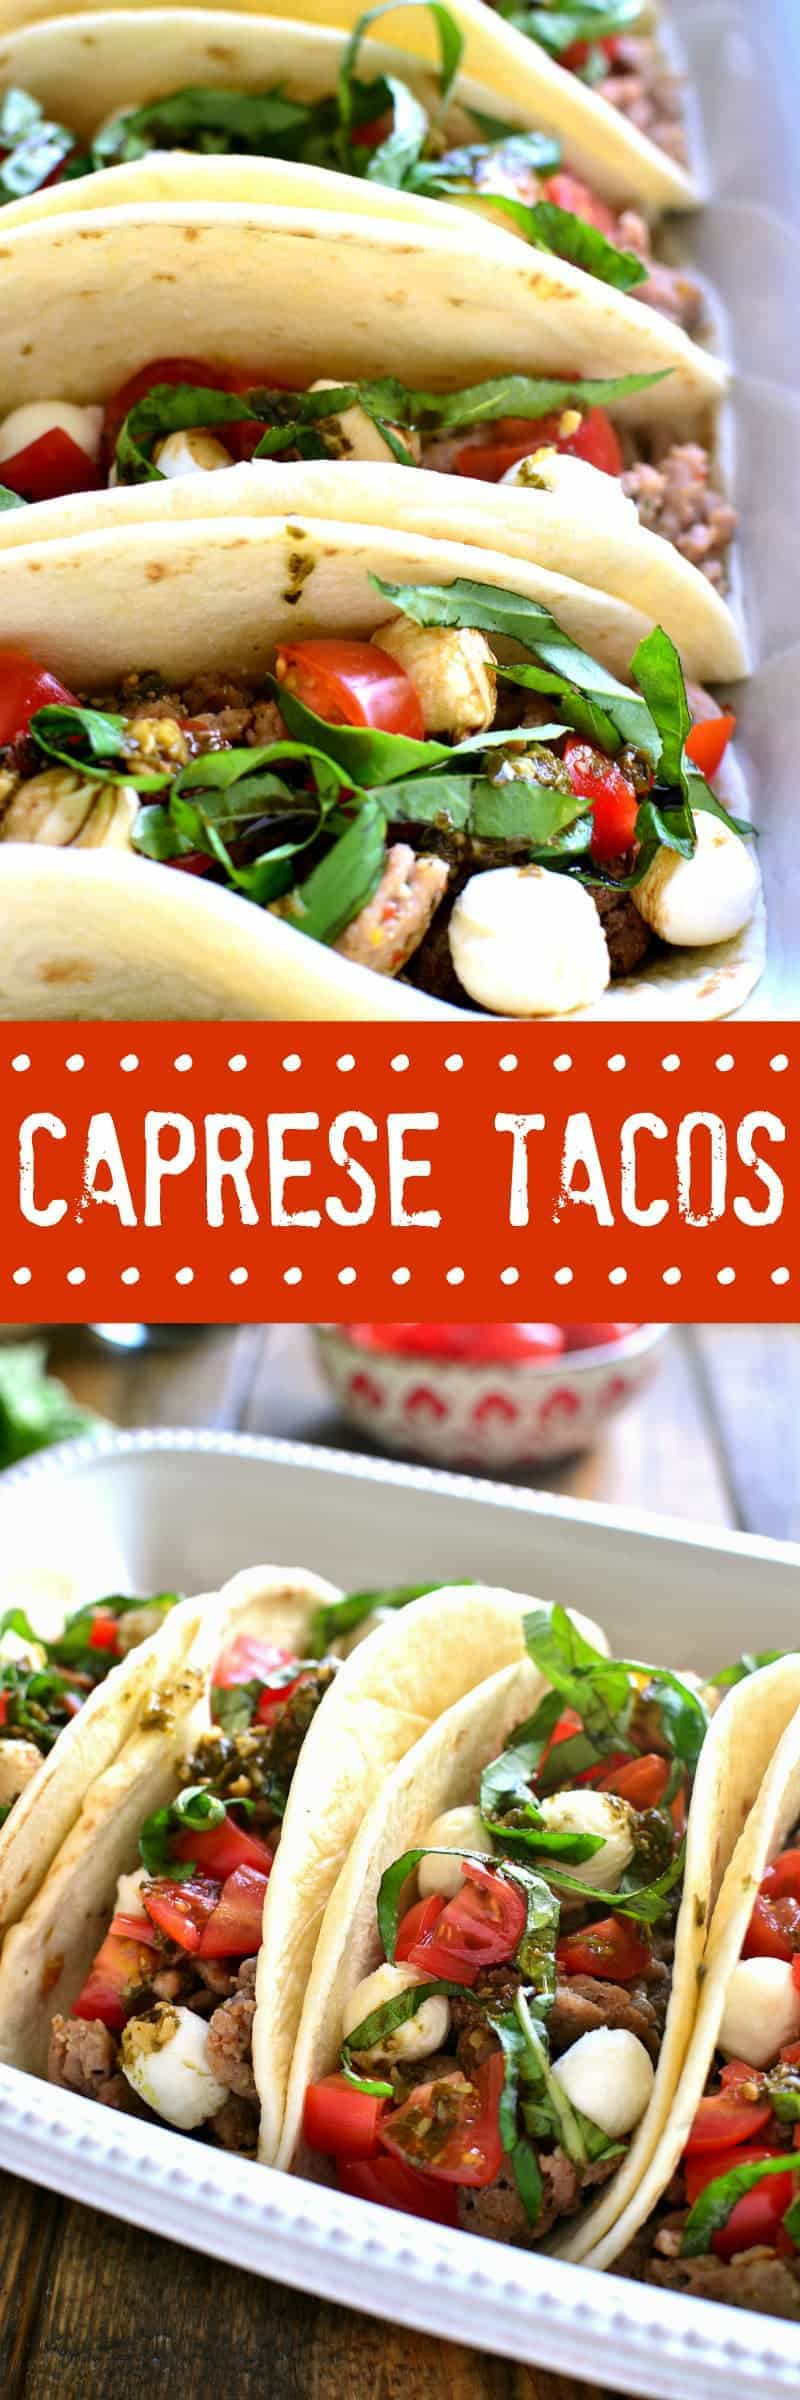 Caprese Tacos combine the classic flavors of caprese salad with a go-to family favorite - tacos! These tacos are made with Italian seasoning and make an easy, delicious weeknight meal!